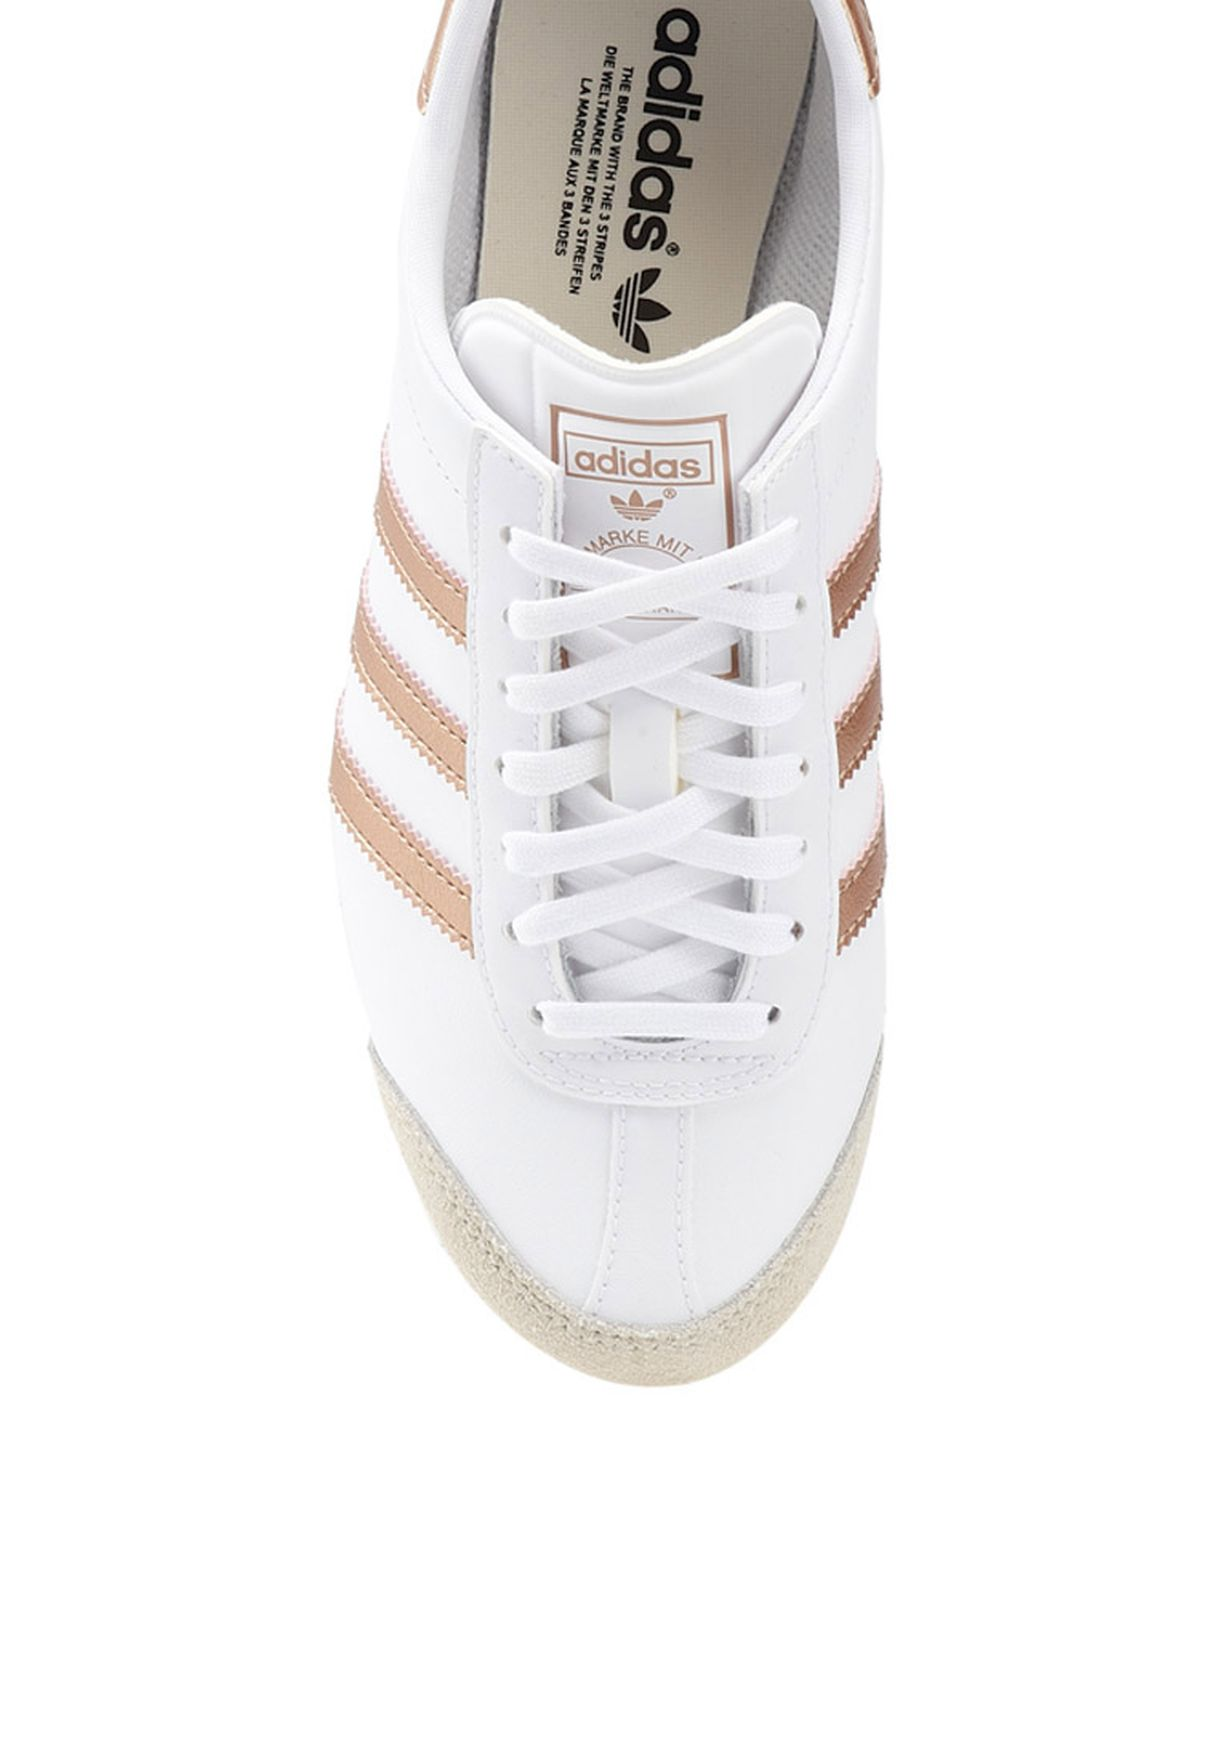 Adidas d65833 Originals Women White Aditrack W Casual